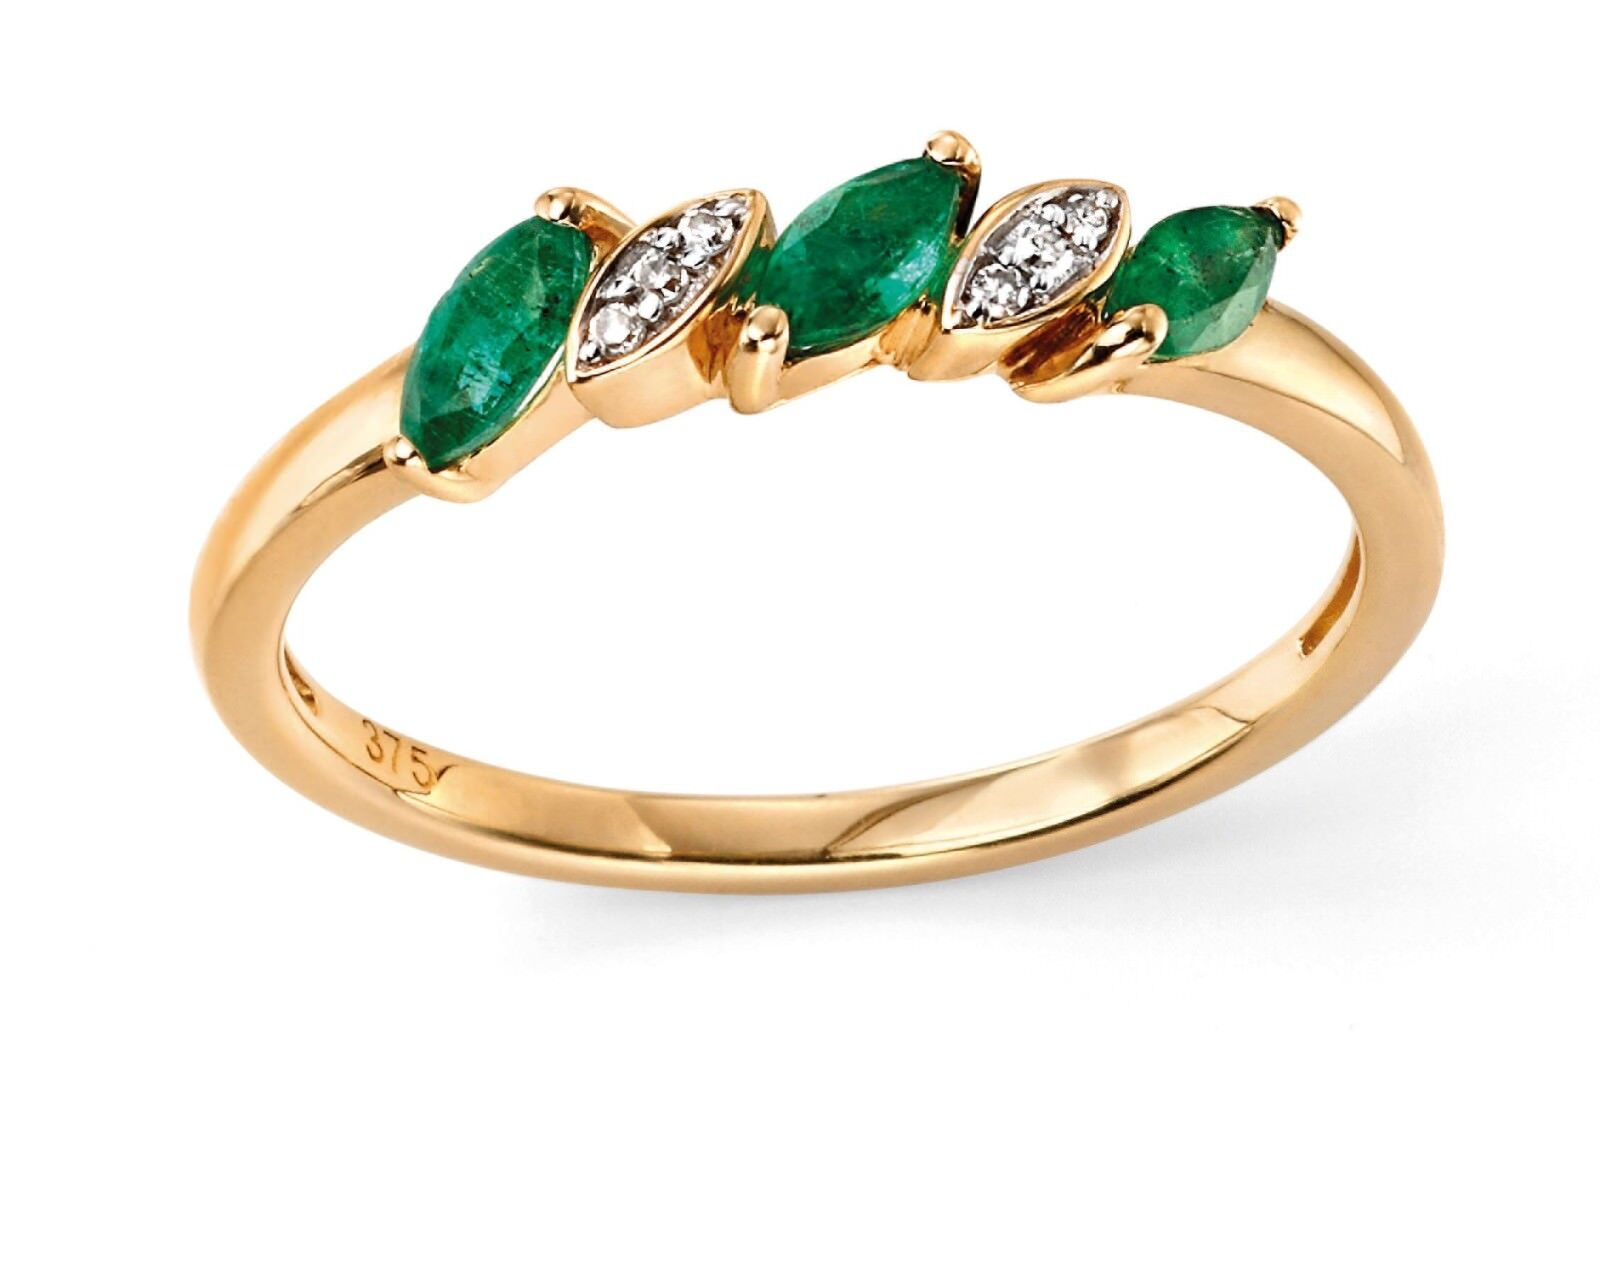 Designer - Elements gold - 9ct Yellow gold Emerald & Diamond Marquise Ring